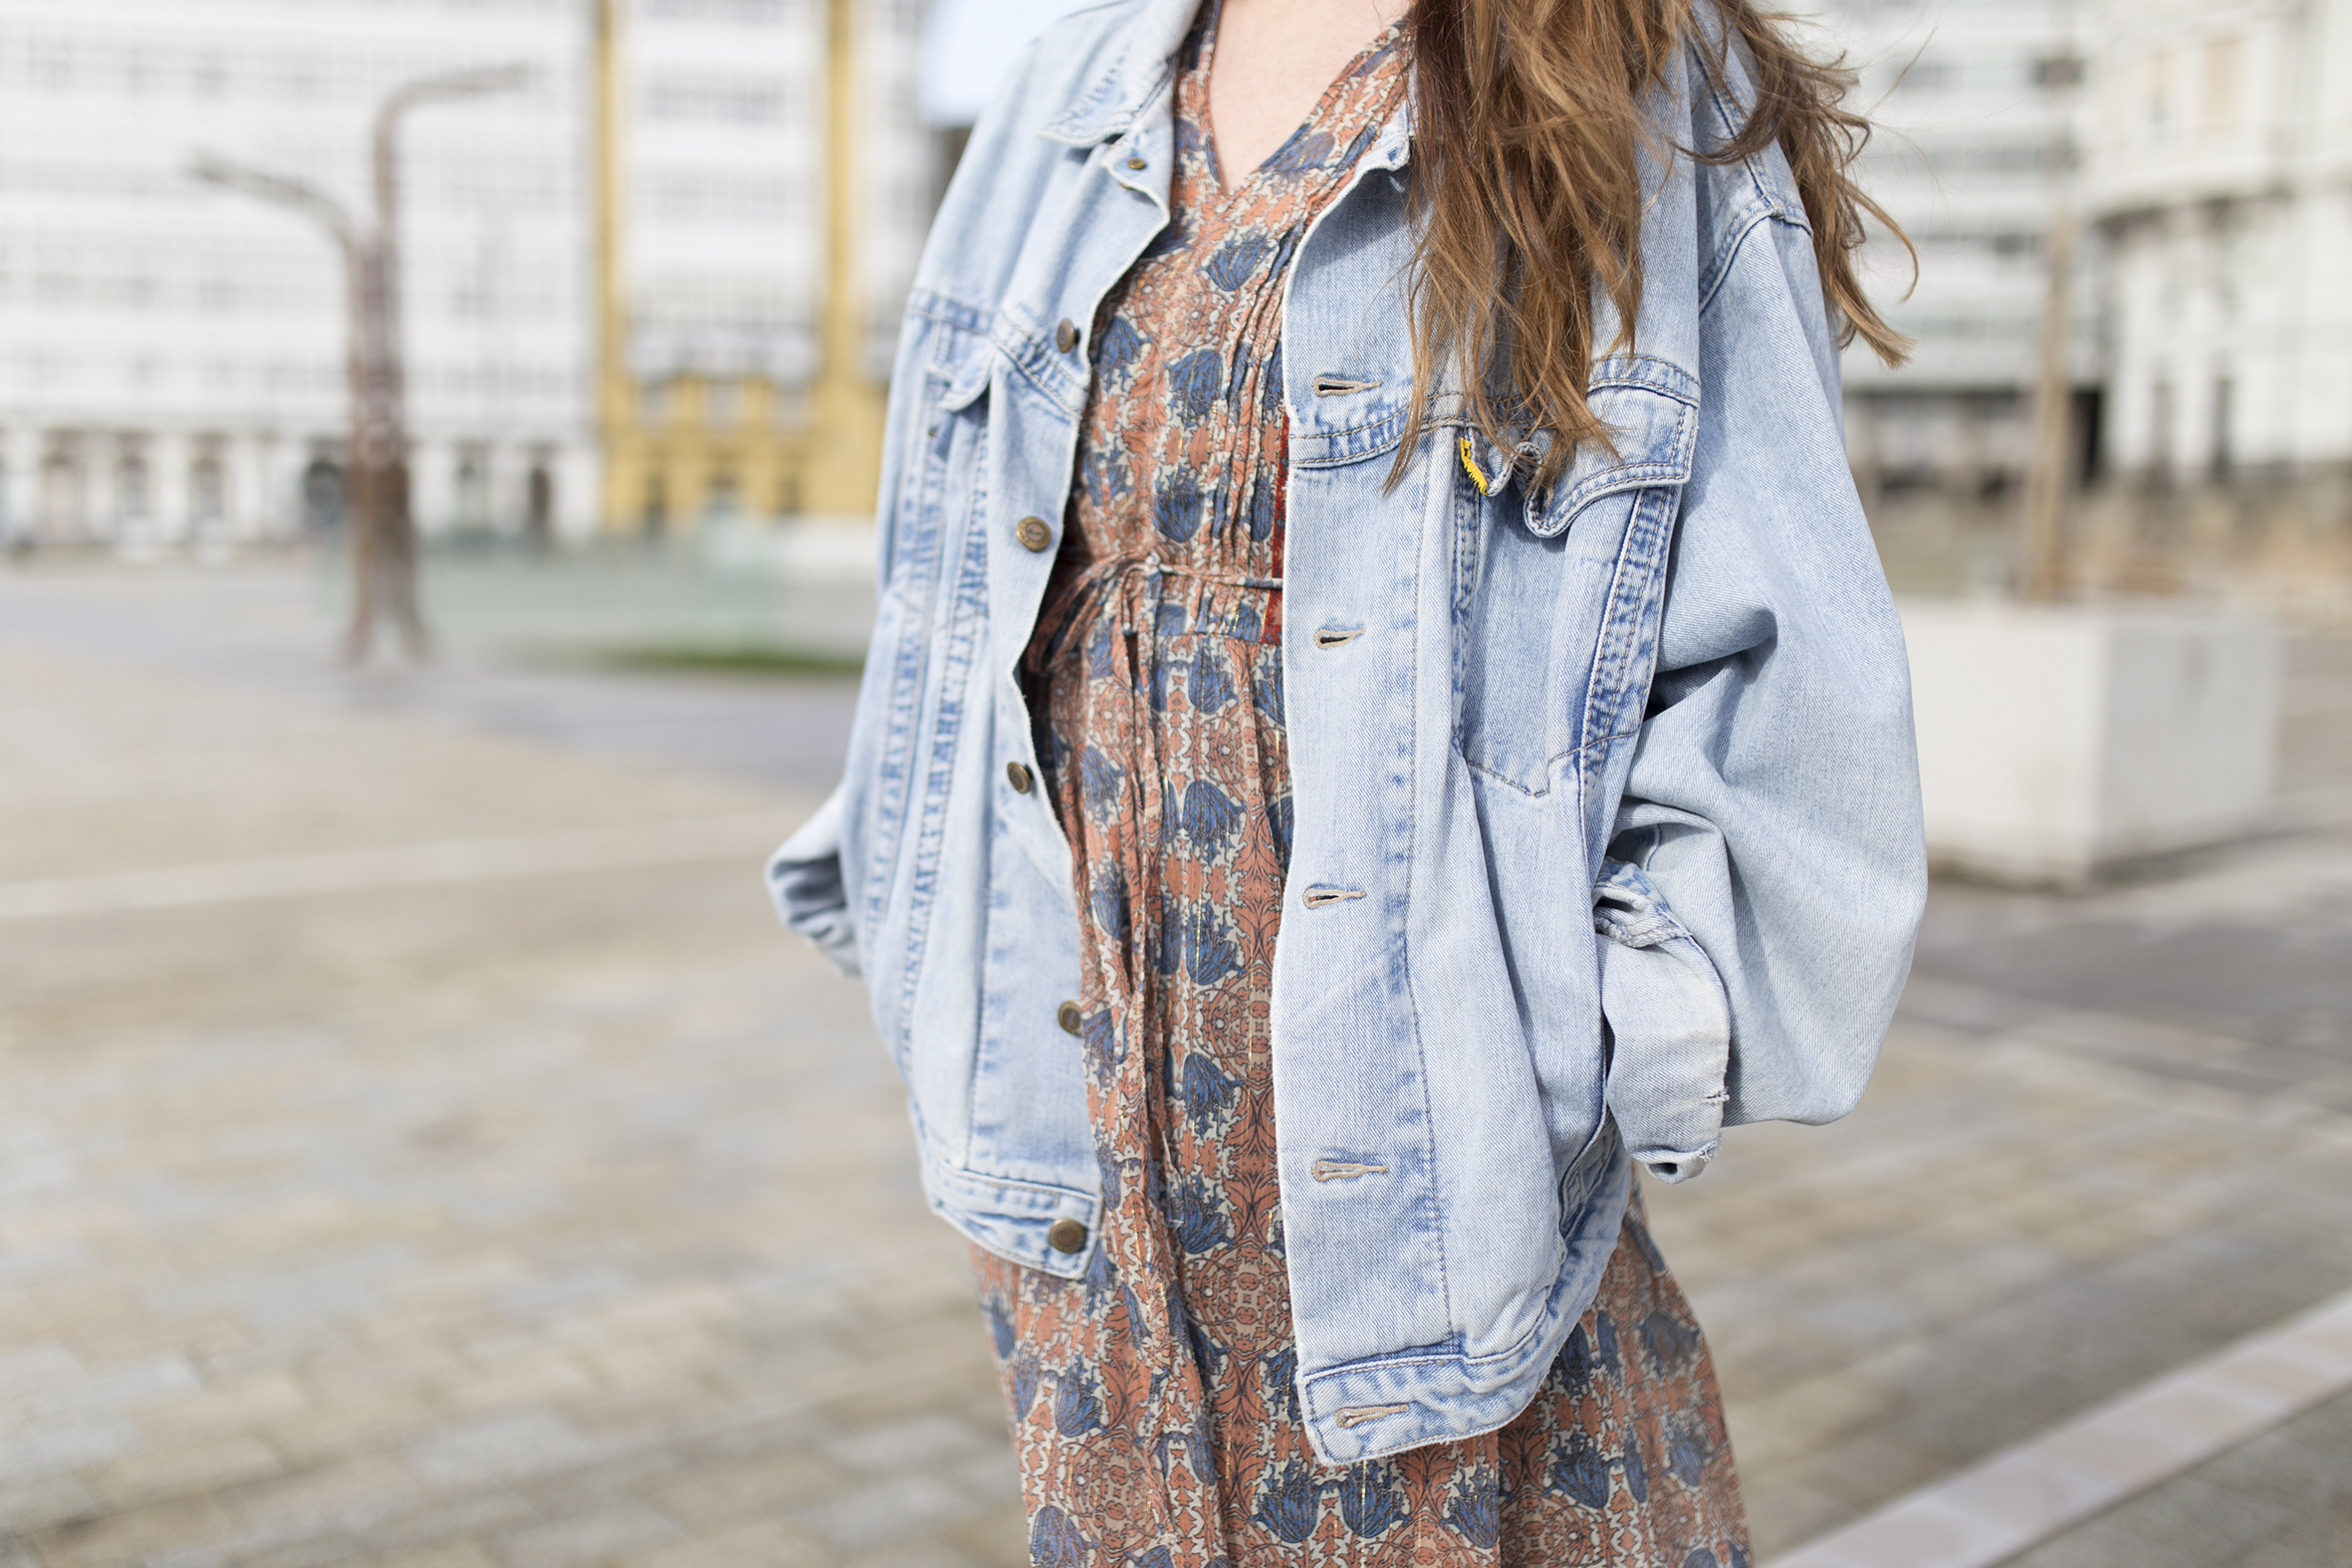 promod-vintage-denim jacket-My partner-fashion-moda-street style-descalzaporelparque